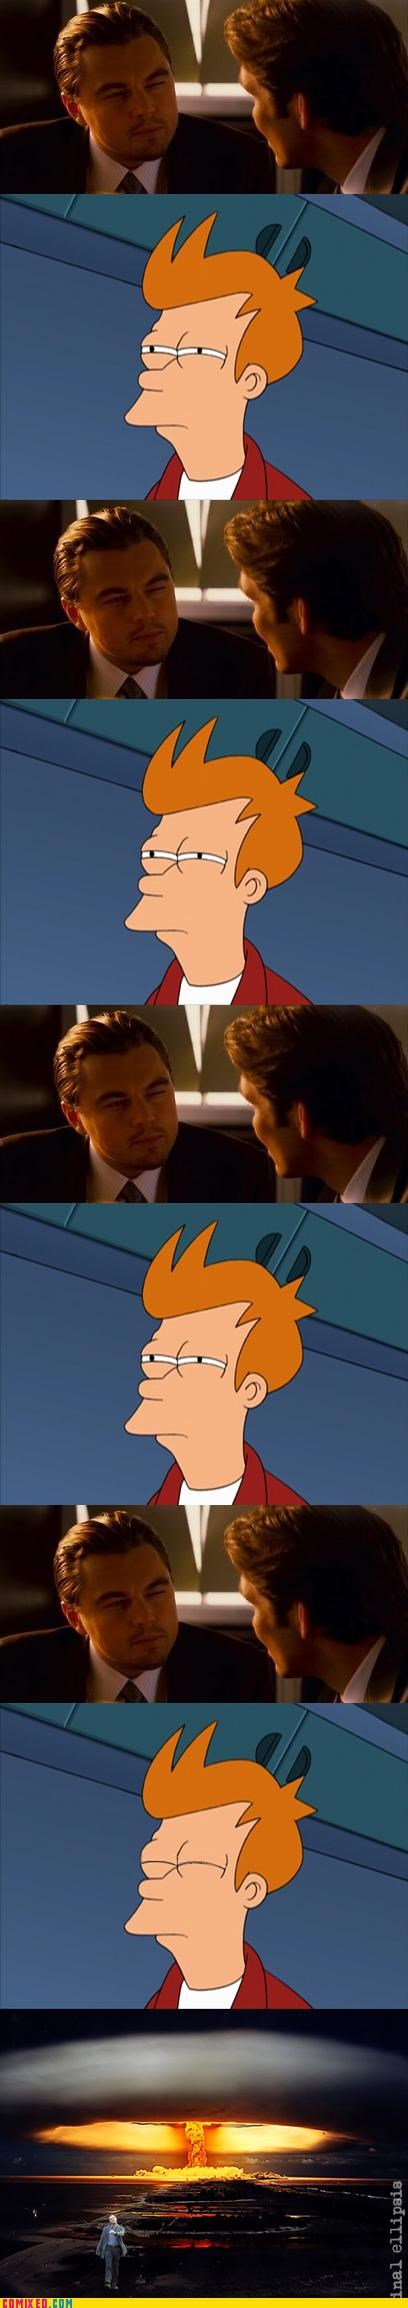 fry Inception leonardo dicaprio Staring TV - 4850570752